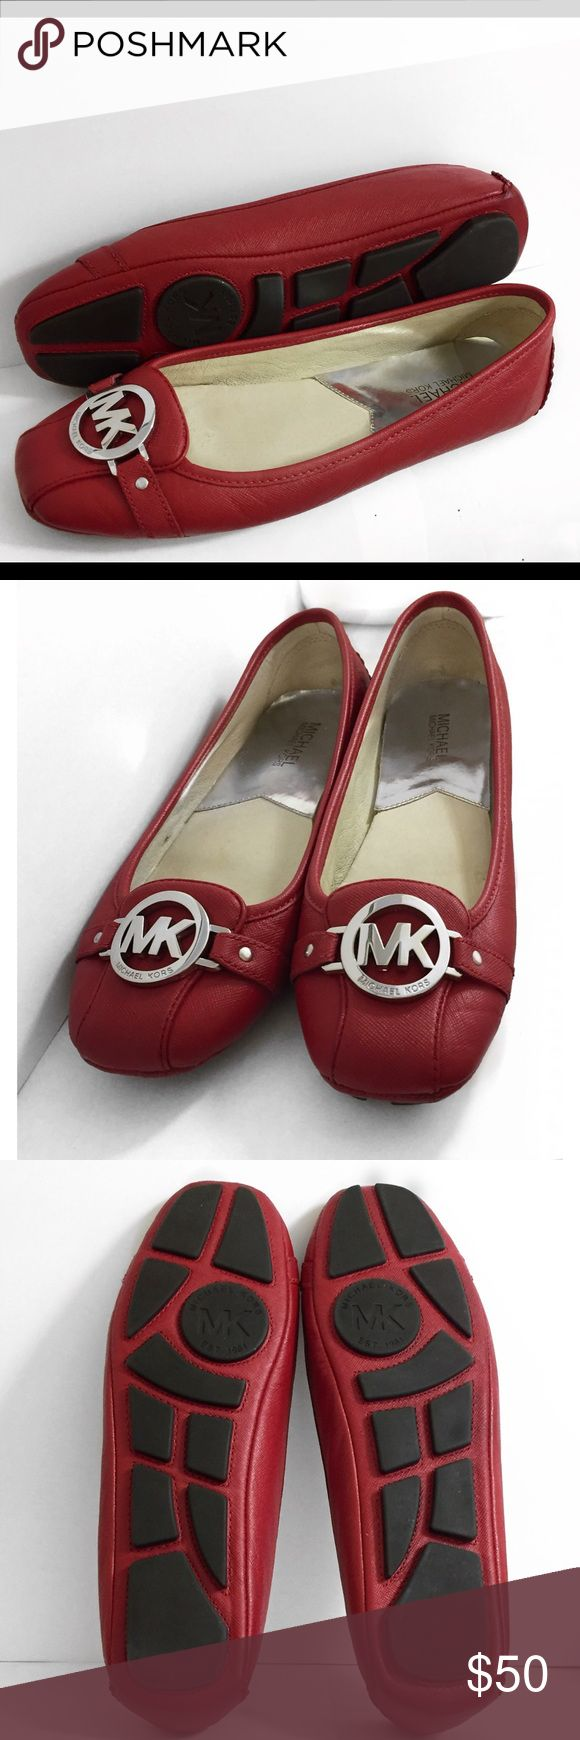 Michael Kors Fulton Moc Ballerina Red Flats- 9.5 Pre-owned bright red MK flats in shoe size 9.5 kept in excellent condition. Chrome hardware shines brightly and shoe soles barely look worn. Michael Kors Shoes Flats & Loafers